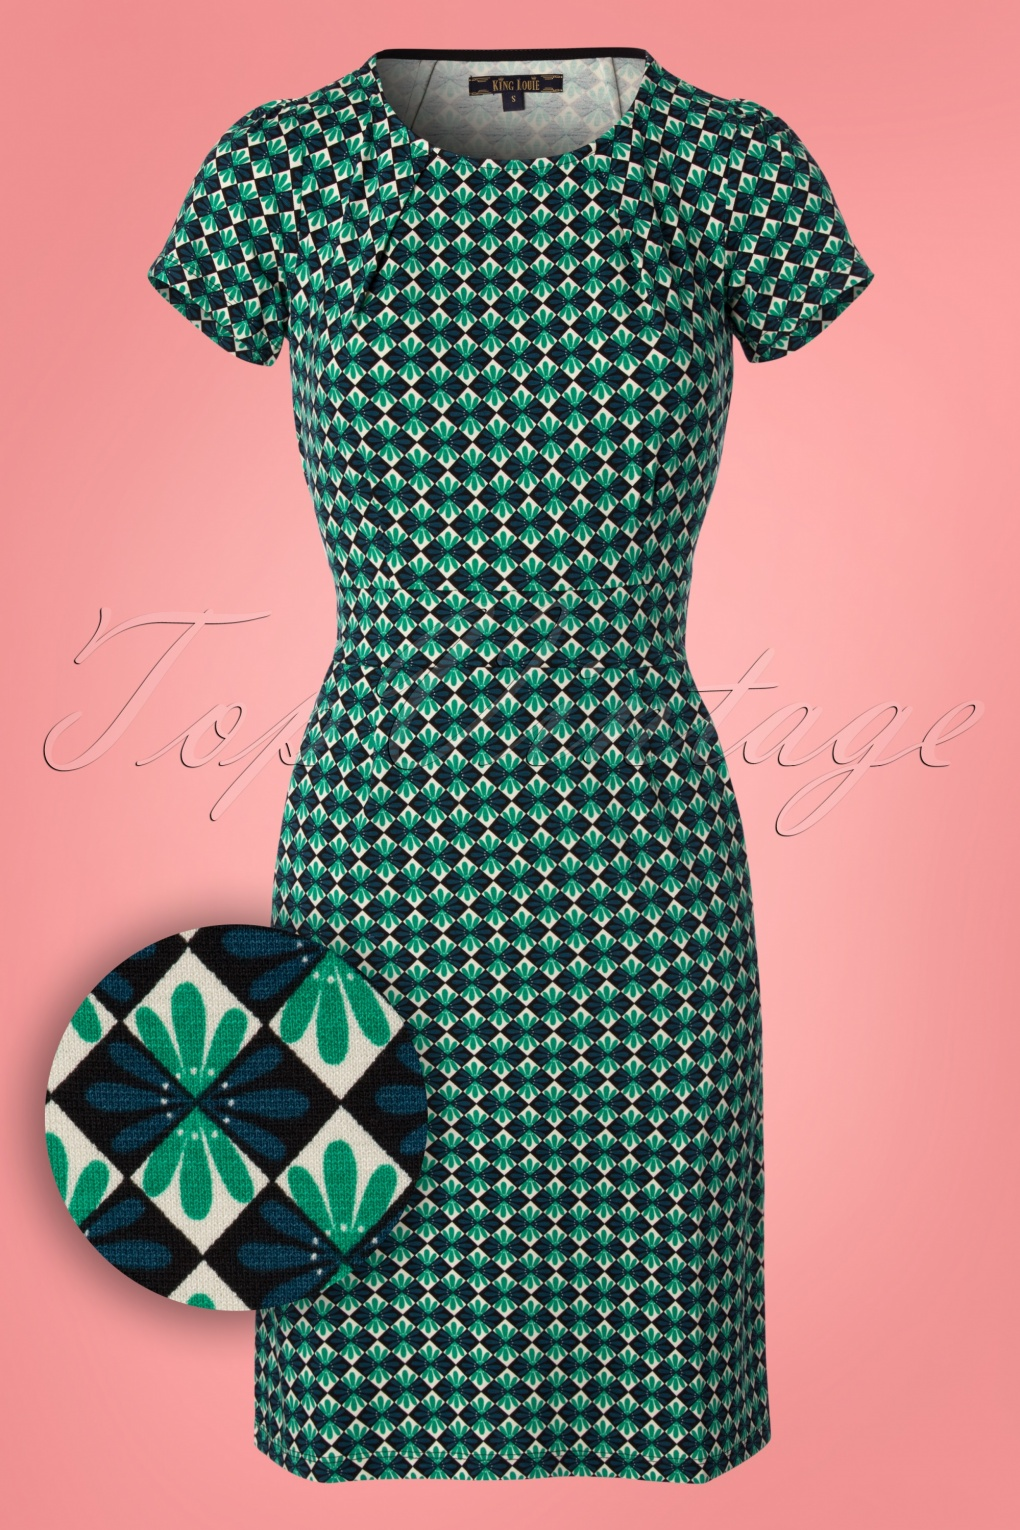 1960s Mad Men Dresses and Clothing Styles 60s Mona Mazapan Dress in Green £88.52 AT vintagedancer.com